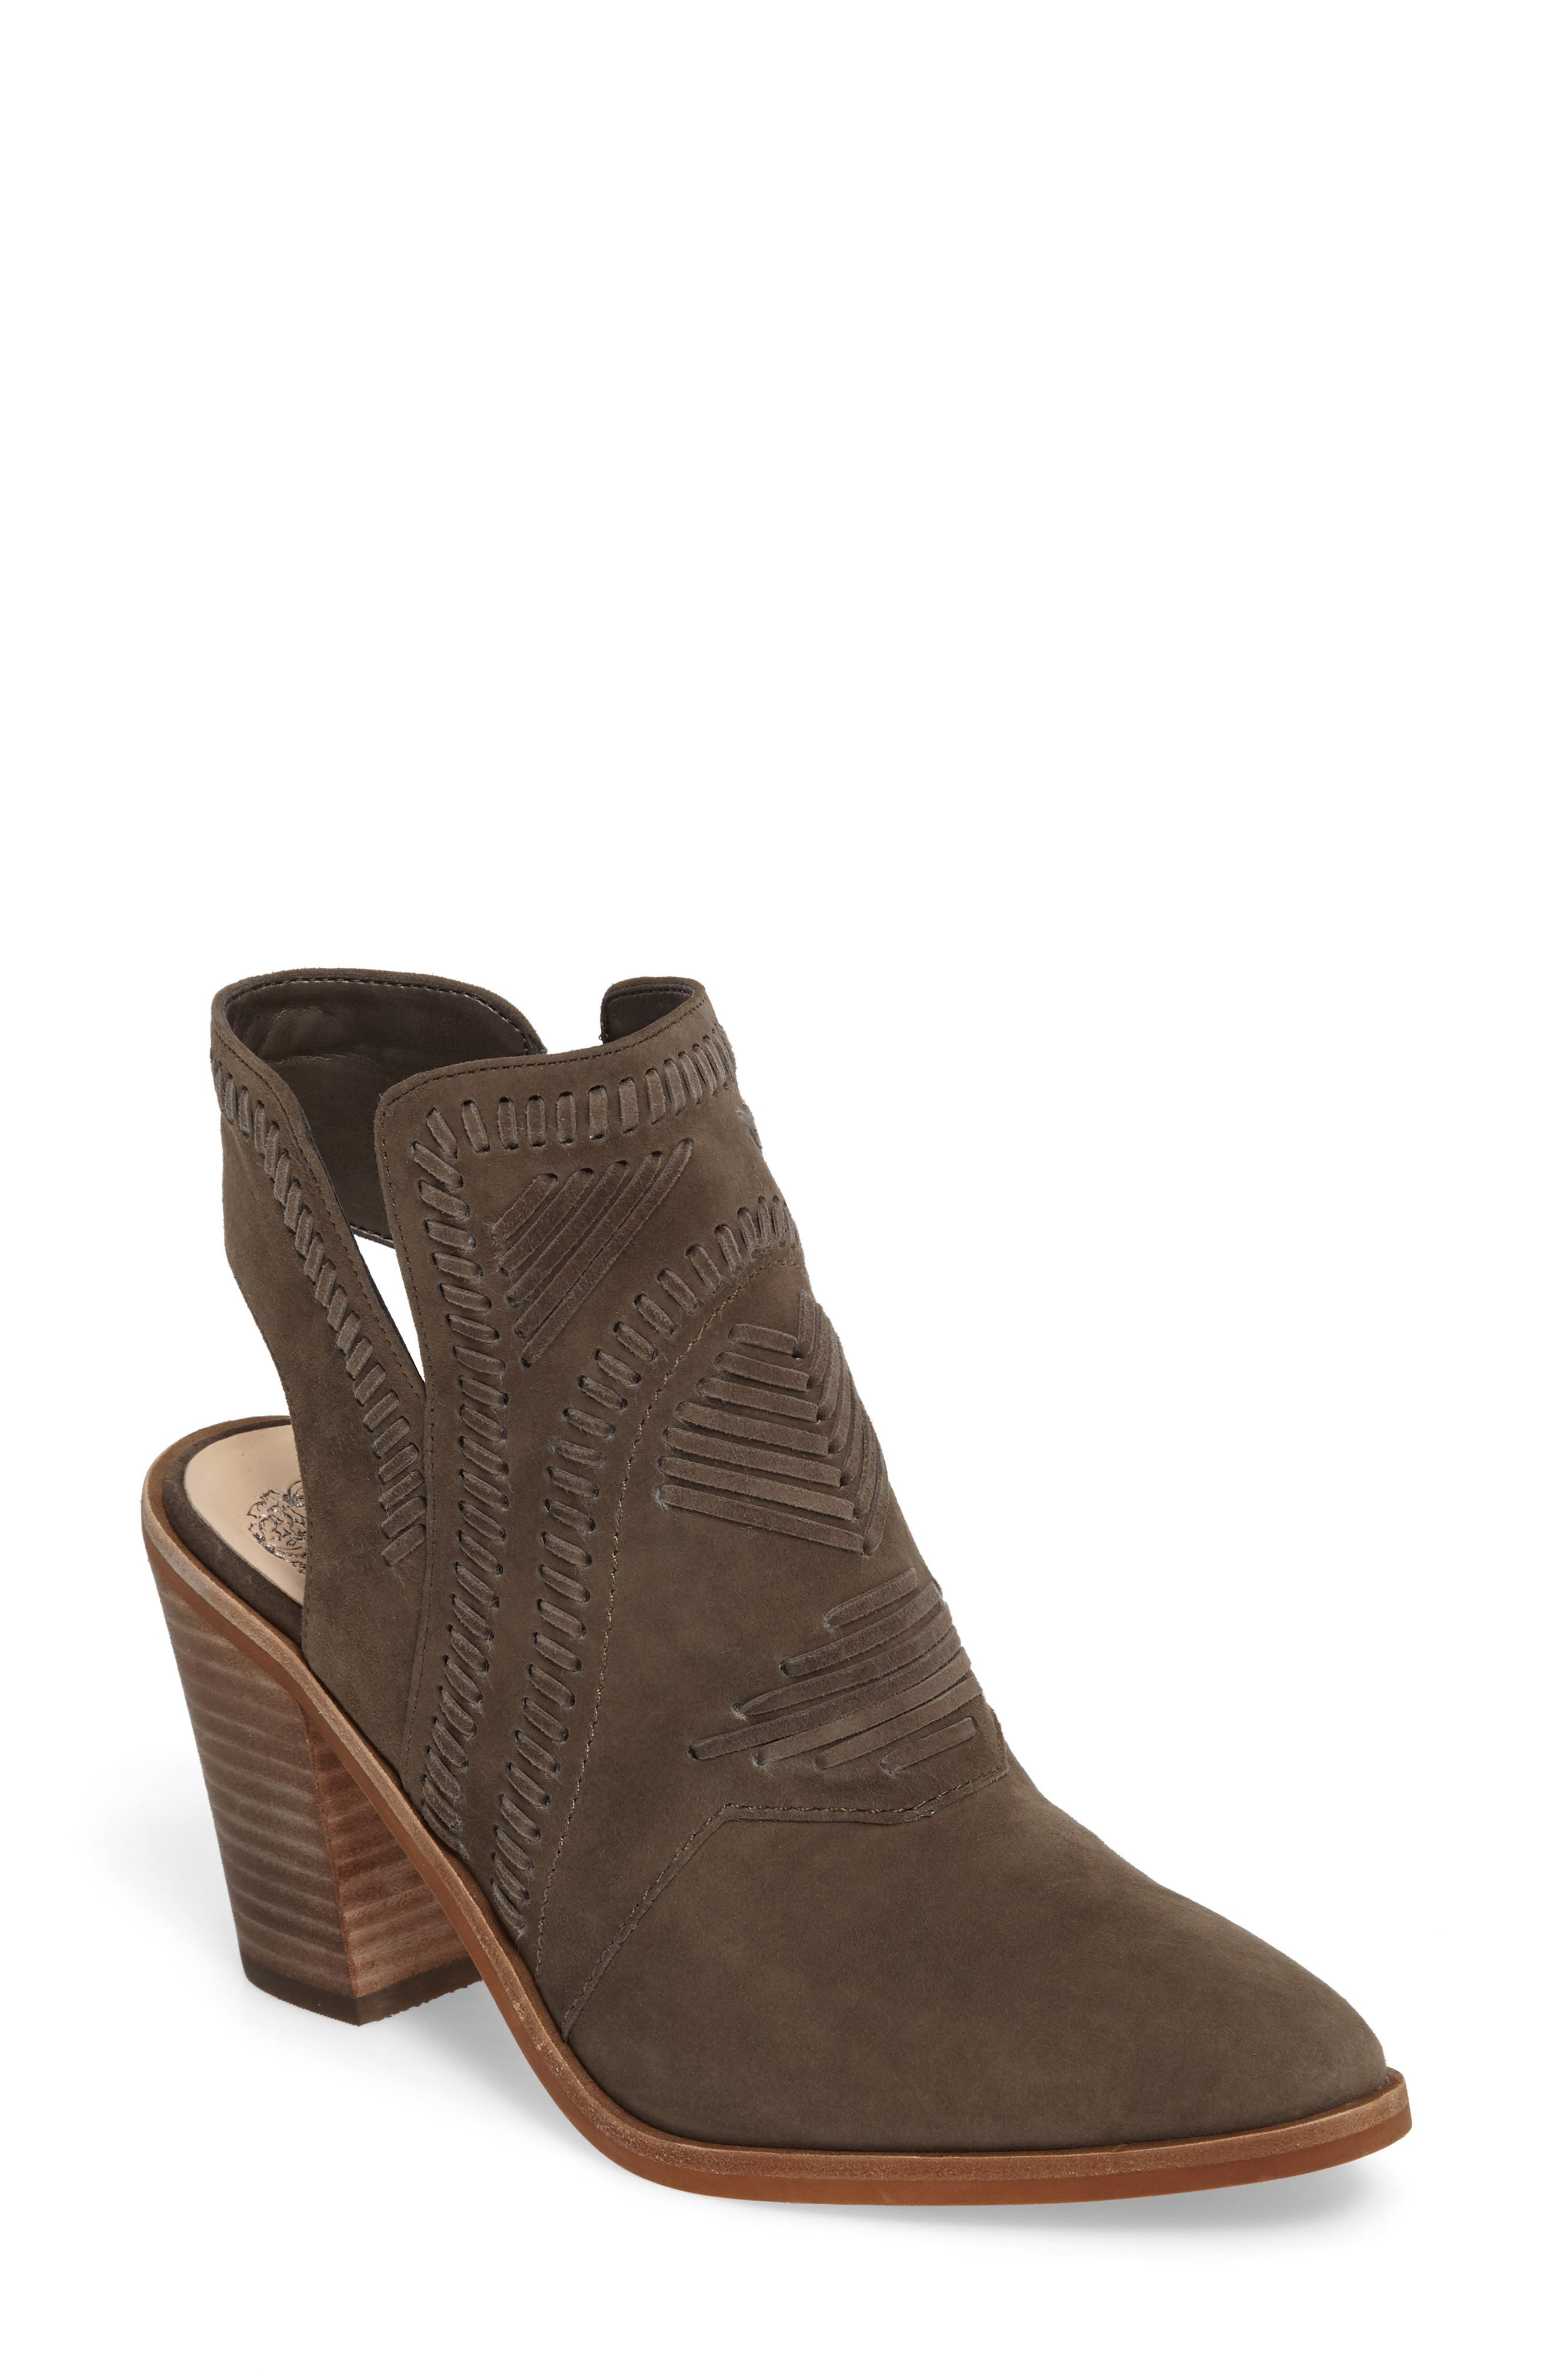 Binks Bootie,                             Main thumbnail 1, color,                             Green Suede